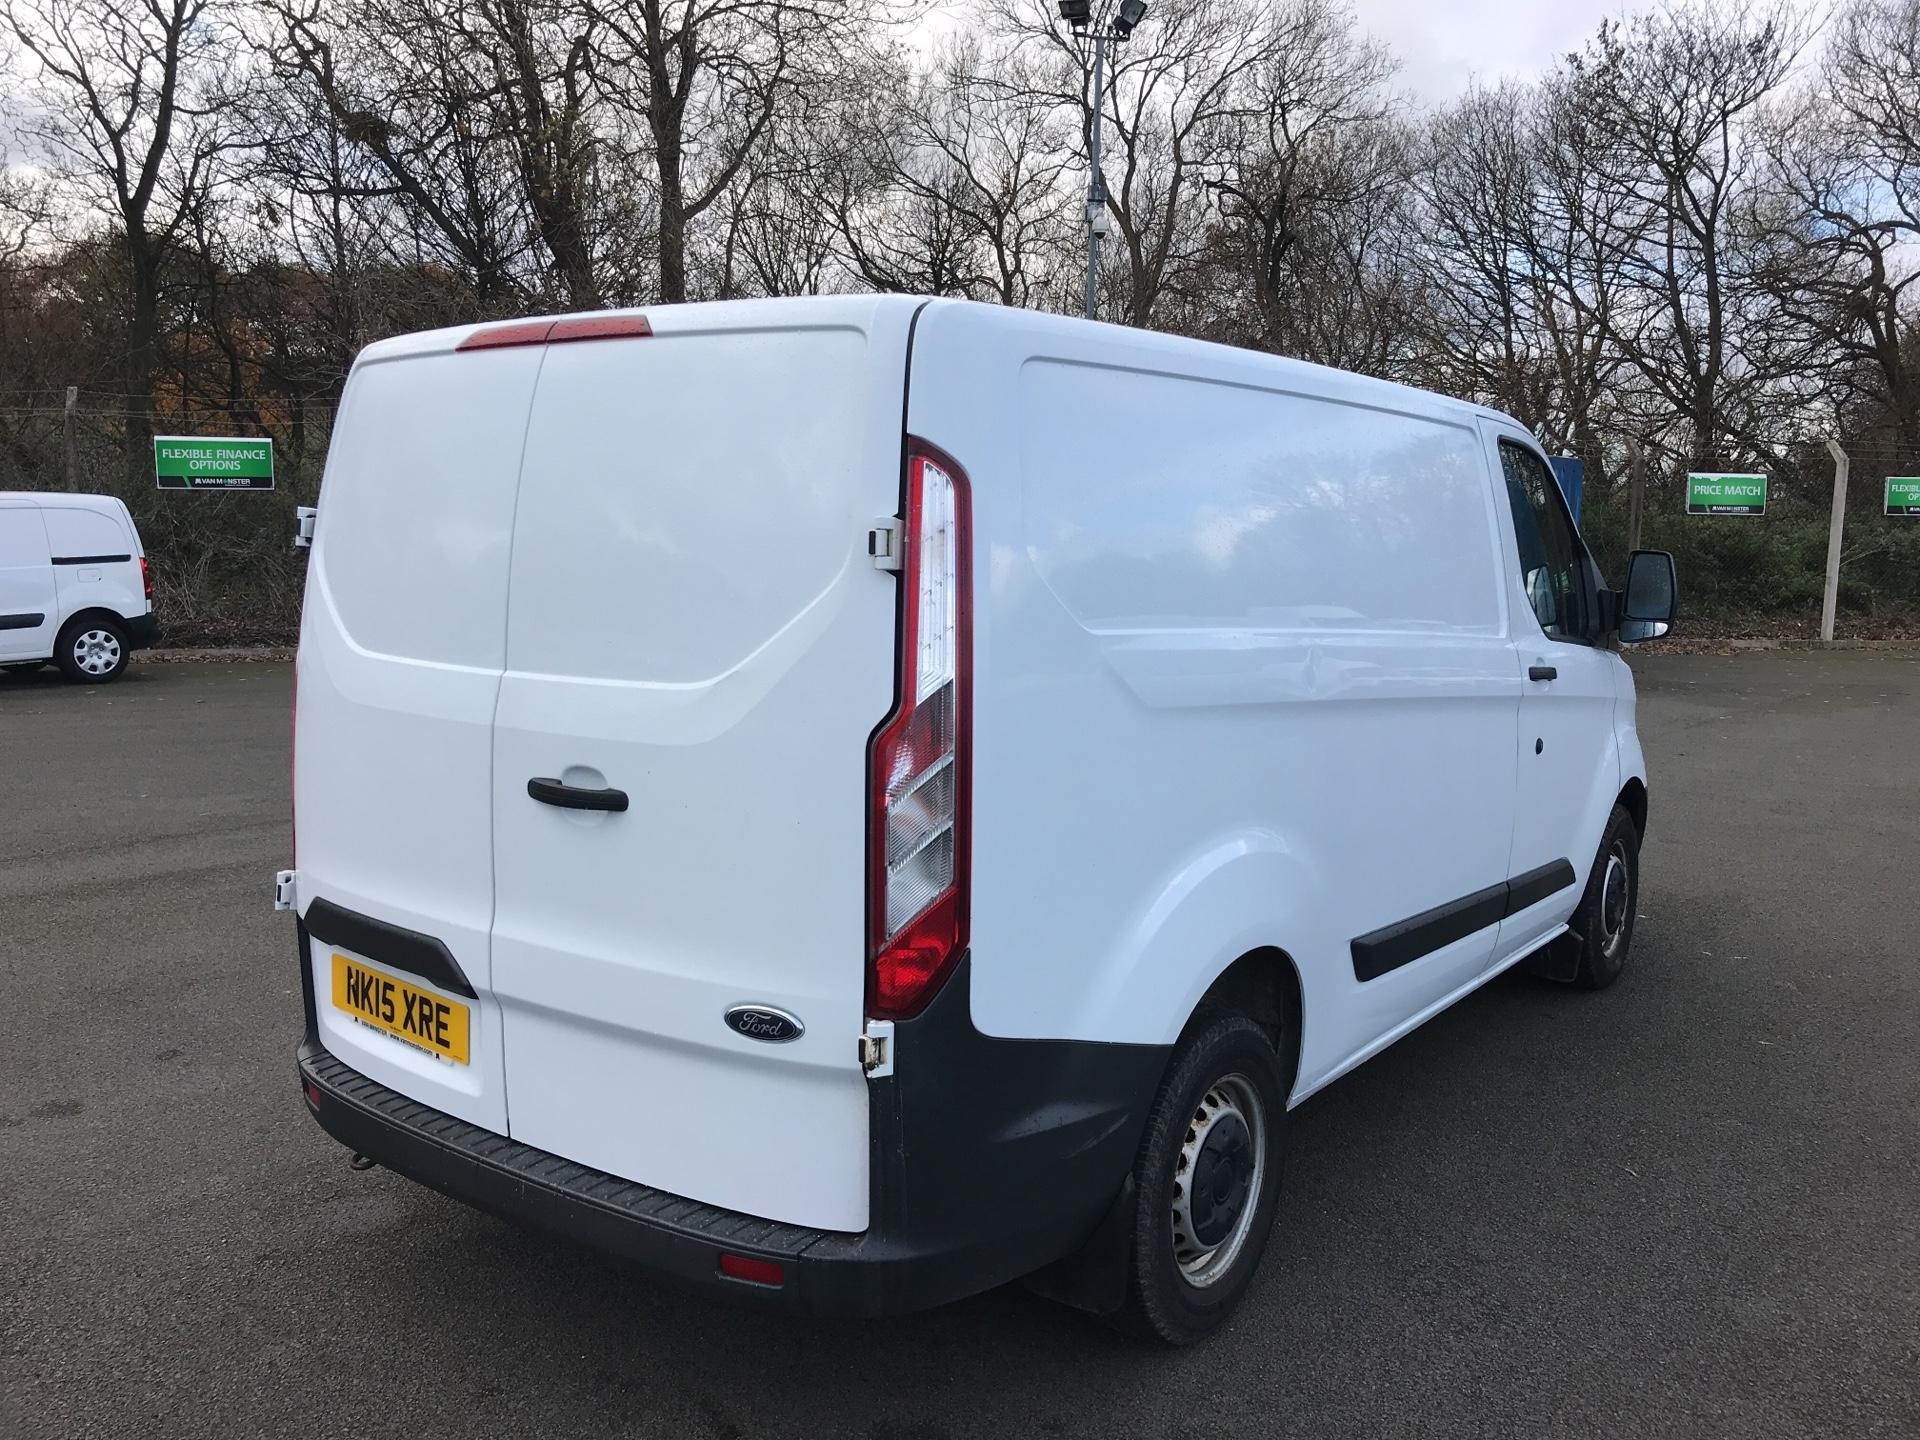 2015 Ford Transit Custom 290 L1 DIESEL FWD 2.2  TDCI 100PS LOW ROOF VAN EURO 5 *VALUE RANGE VEHICLE - CONDITION REFLECTED IN PRICE* (NK15XRE) Image 3